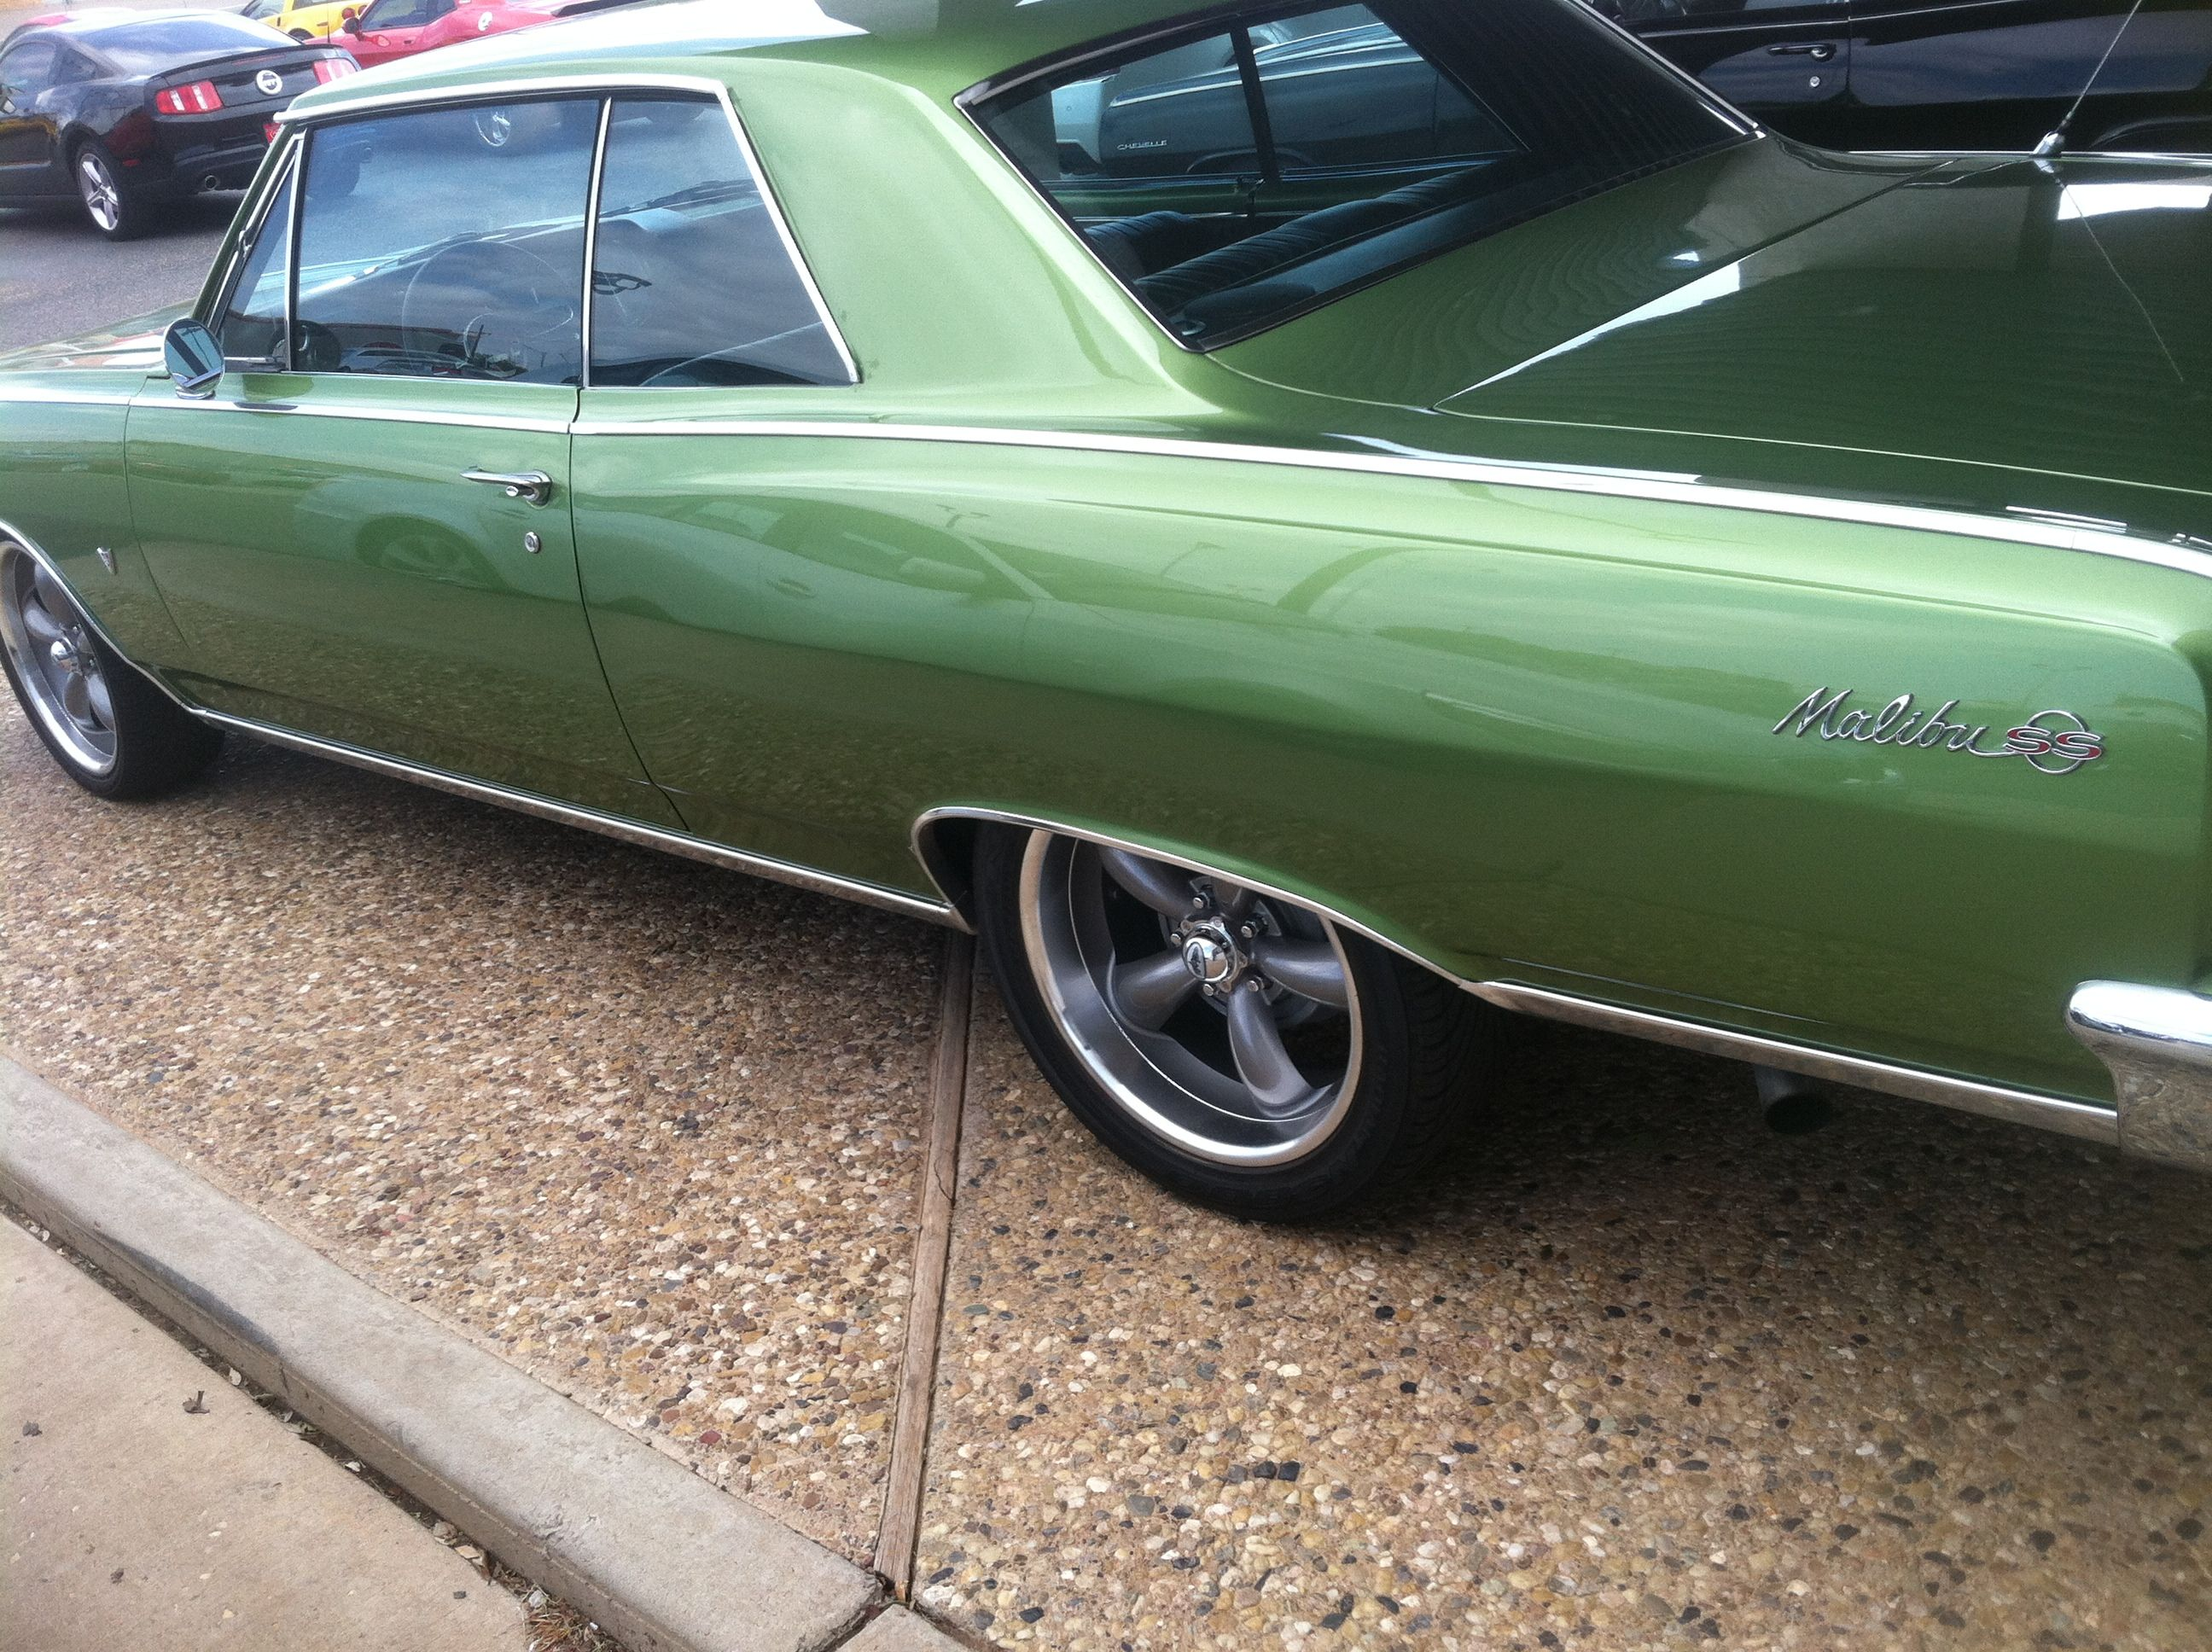 64 Chevelle SS, Close to my color after I had it painted from